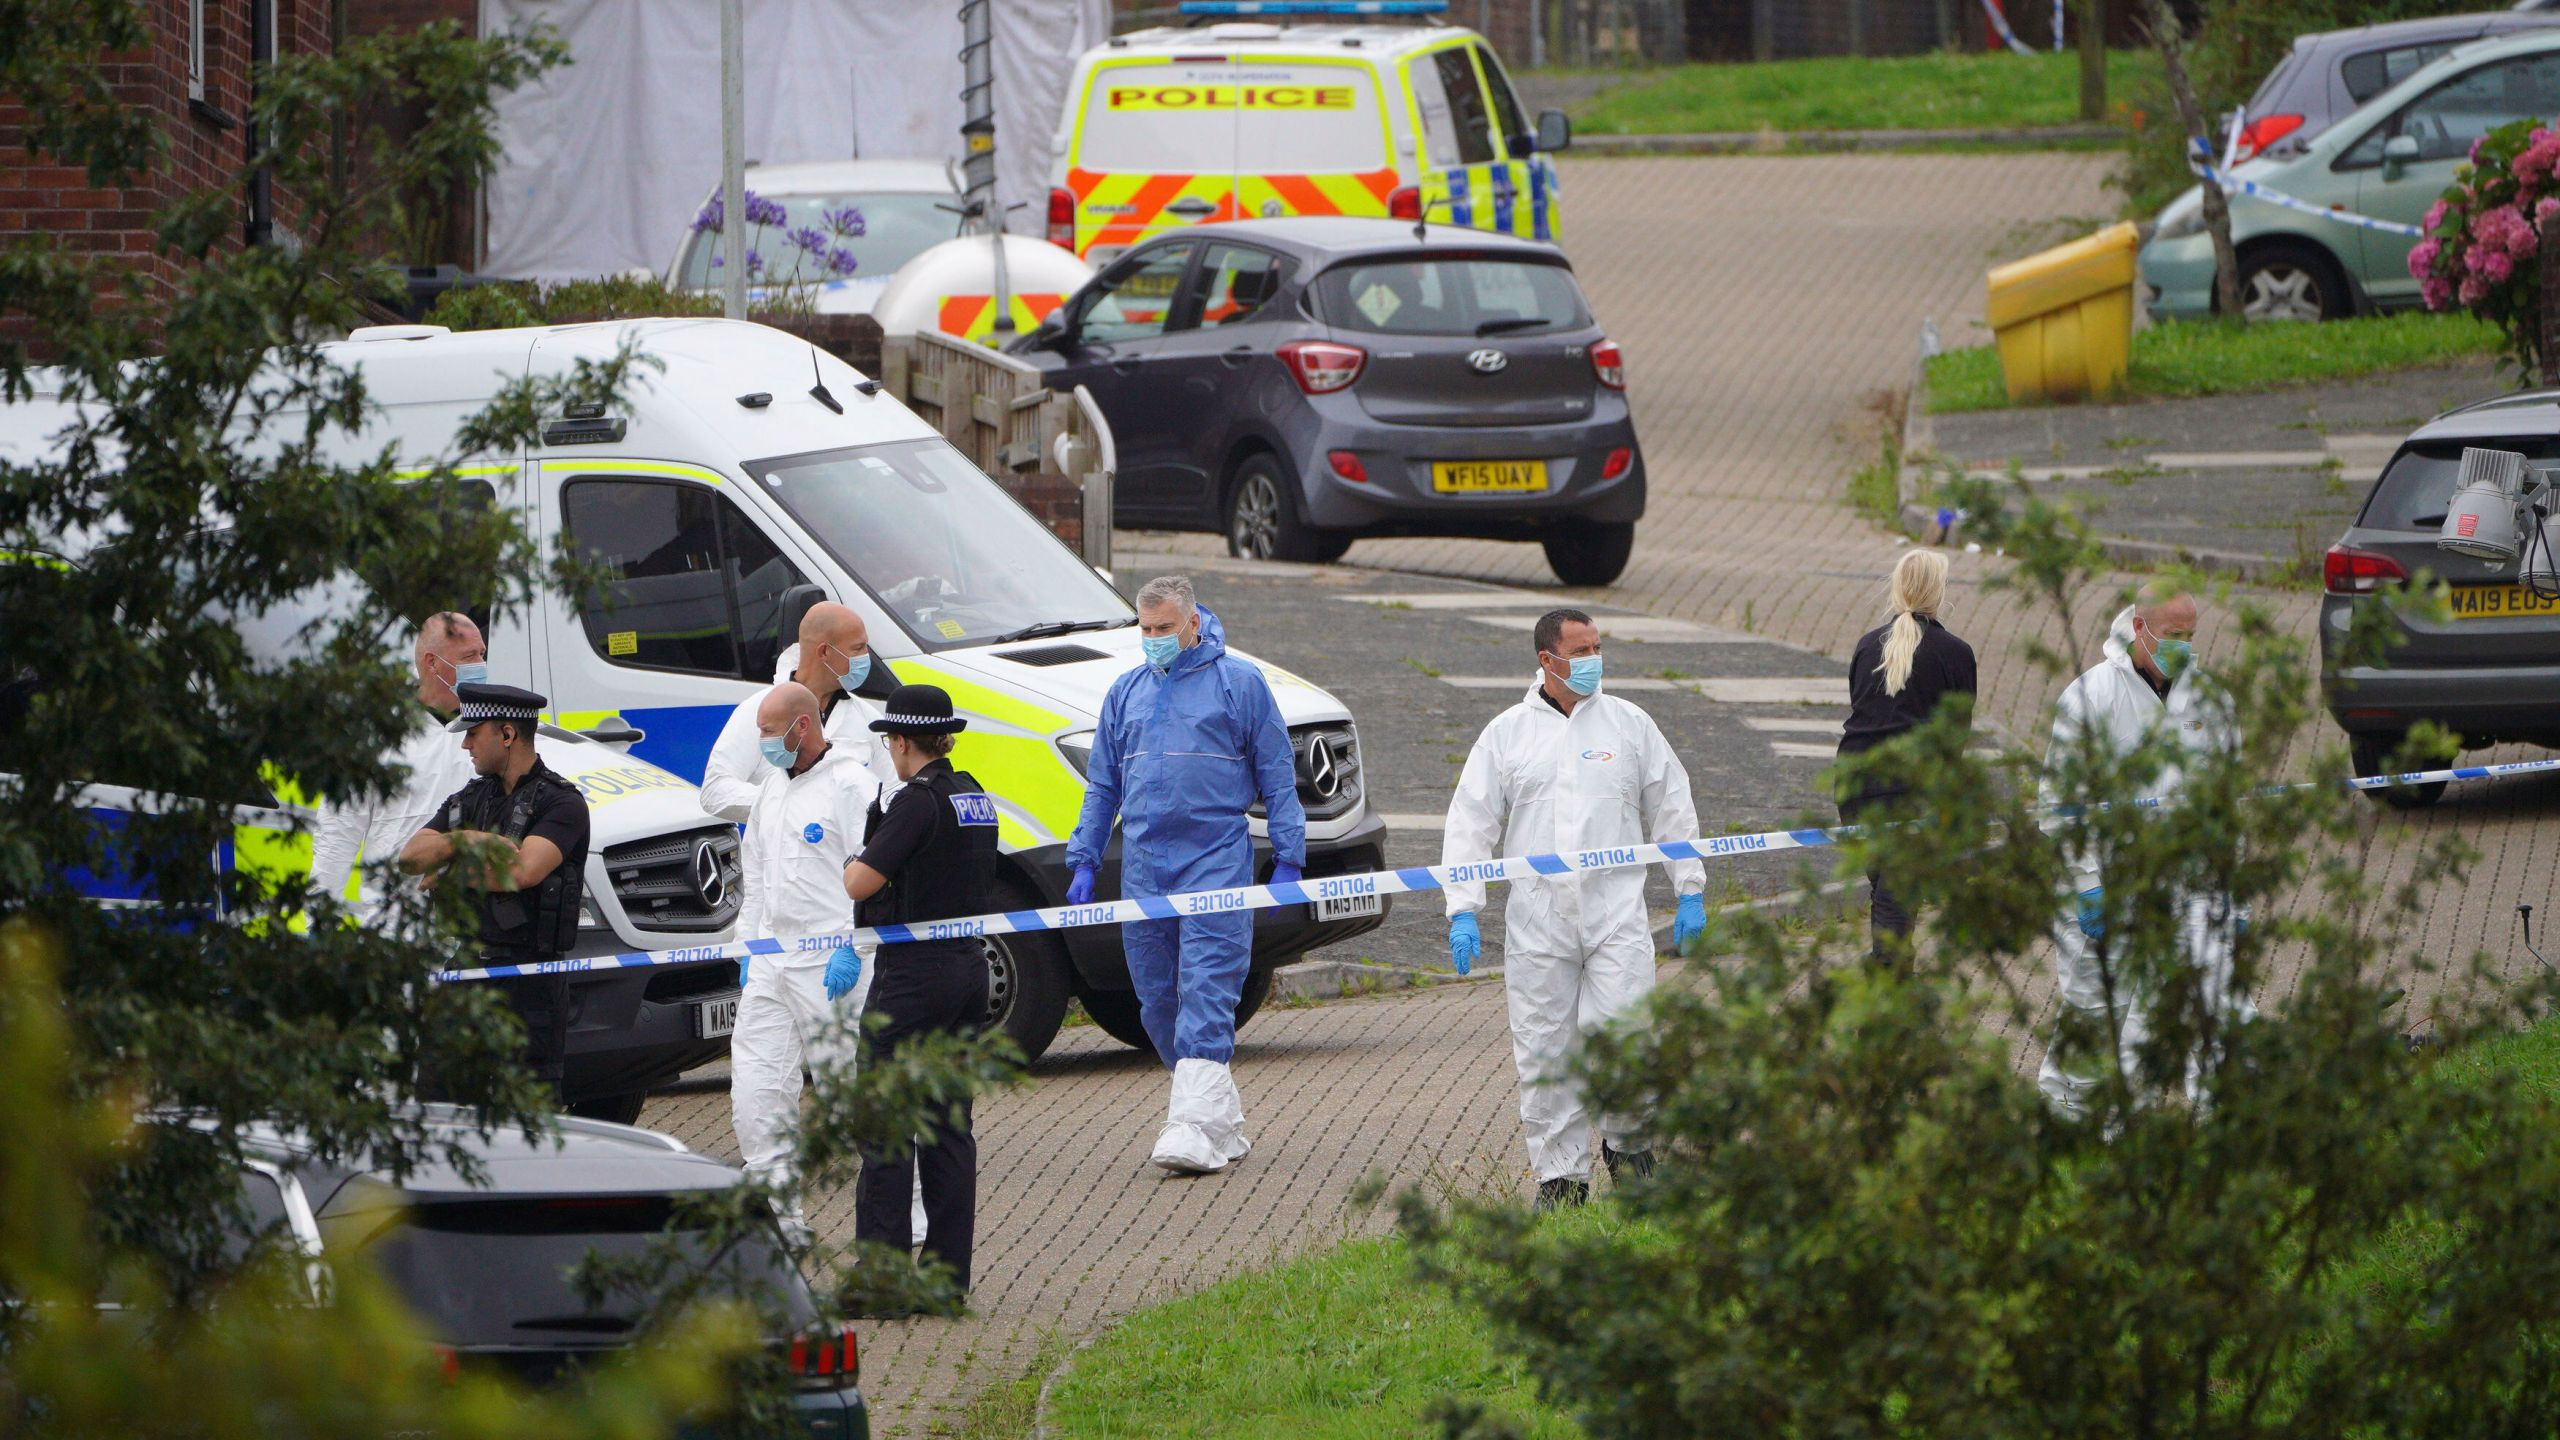 Forensic officers walk in Biddick Drive in the Keyham area of Plymouth, England Friday Aug. 13, 2021 where six people were killed in a shooting incident. (Ben Birchall/PA via AP)